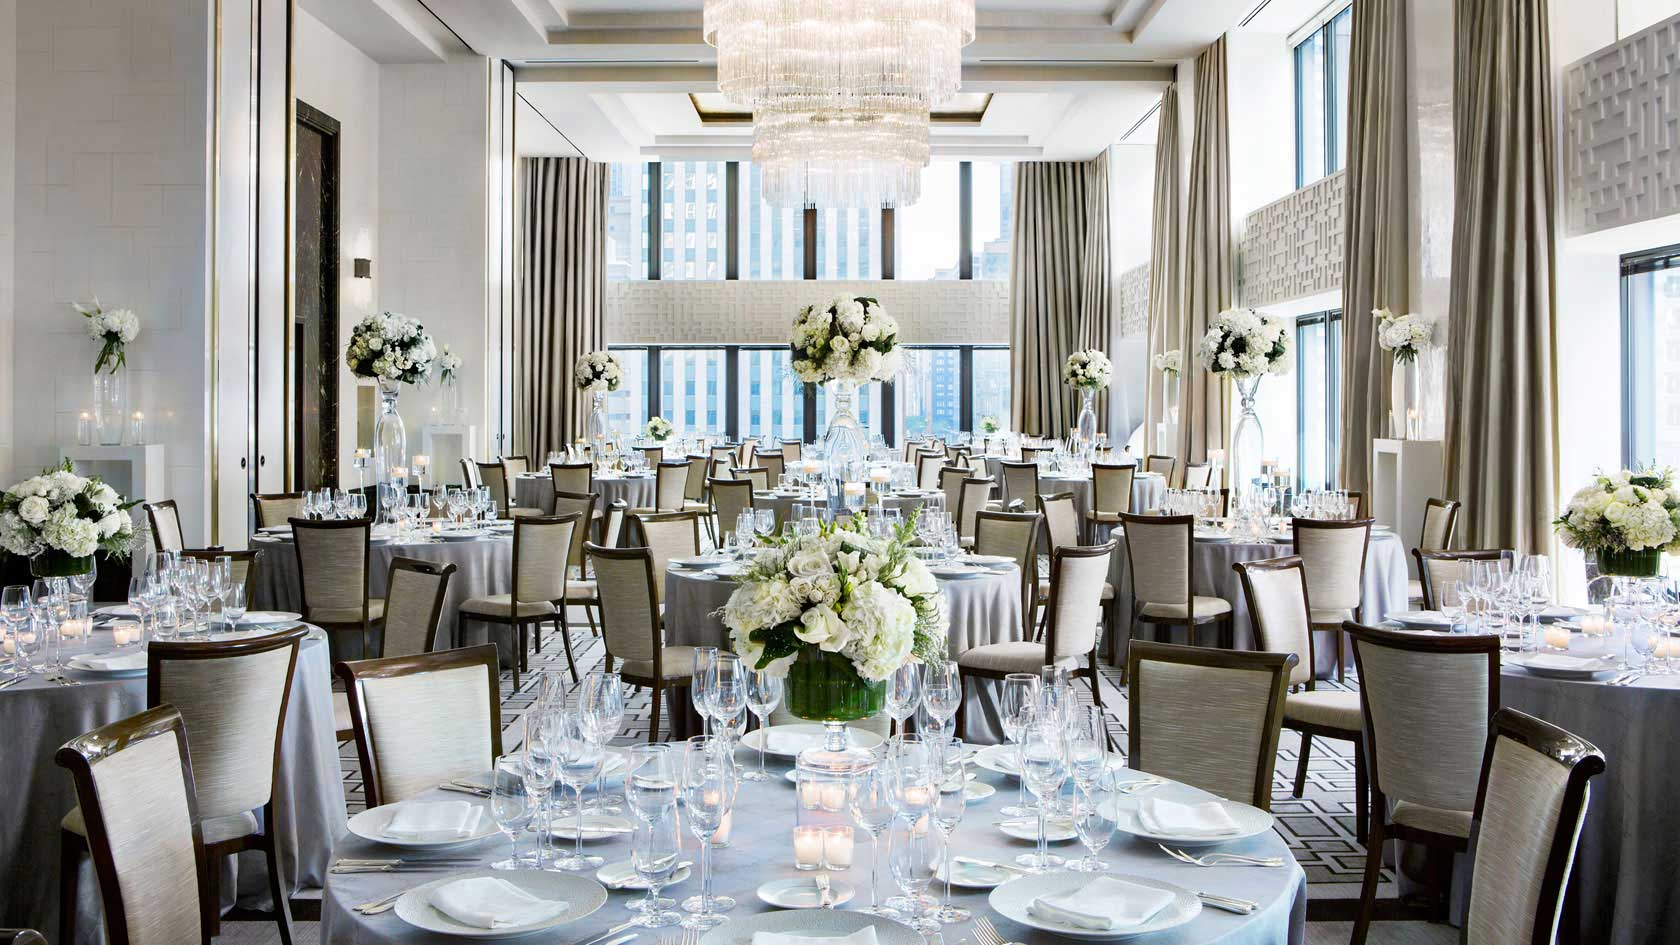 Langham Devonshire ballroom wedding set up